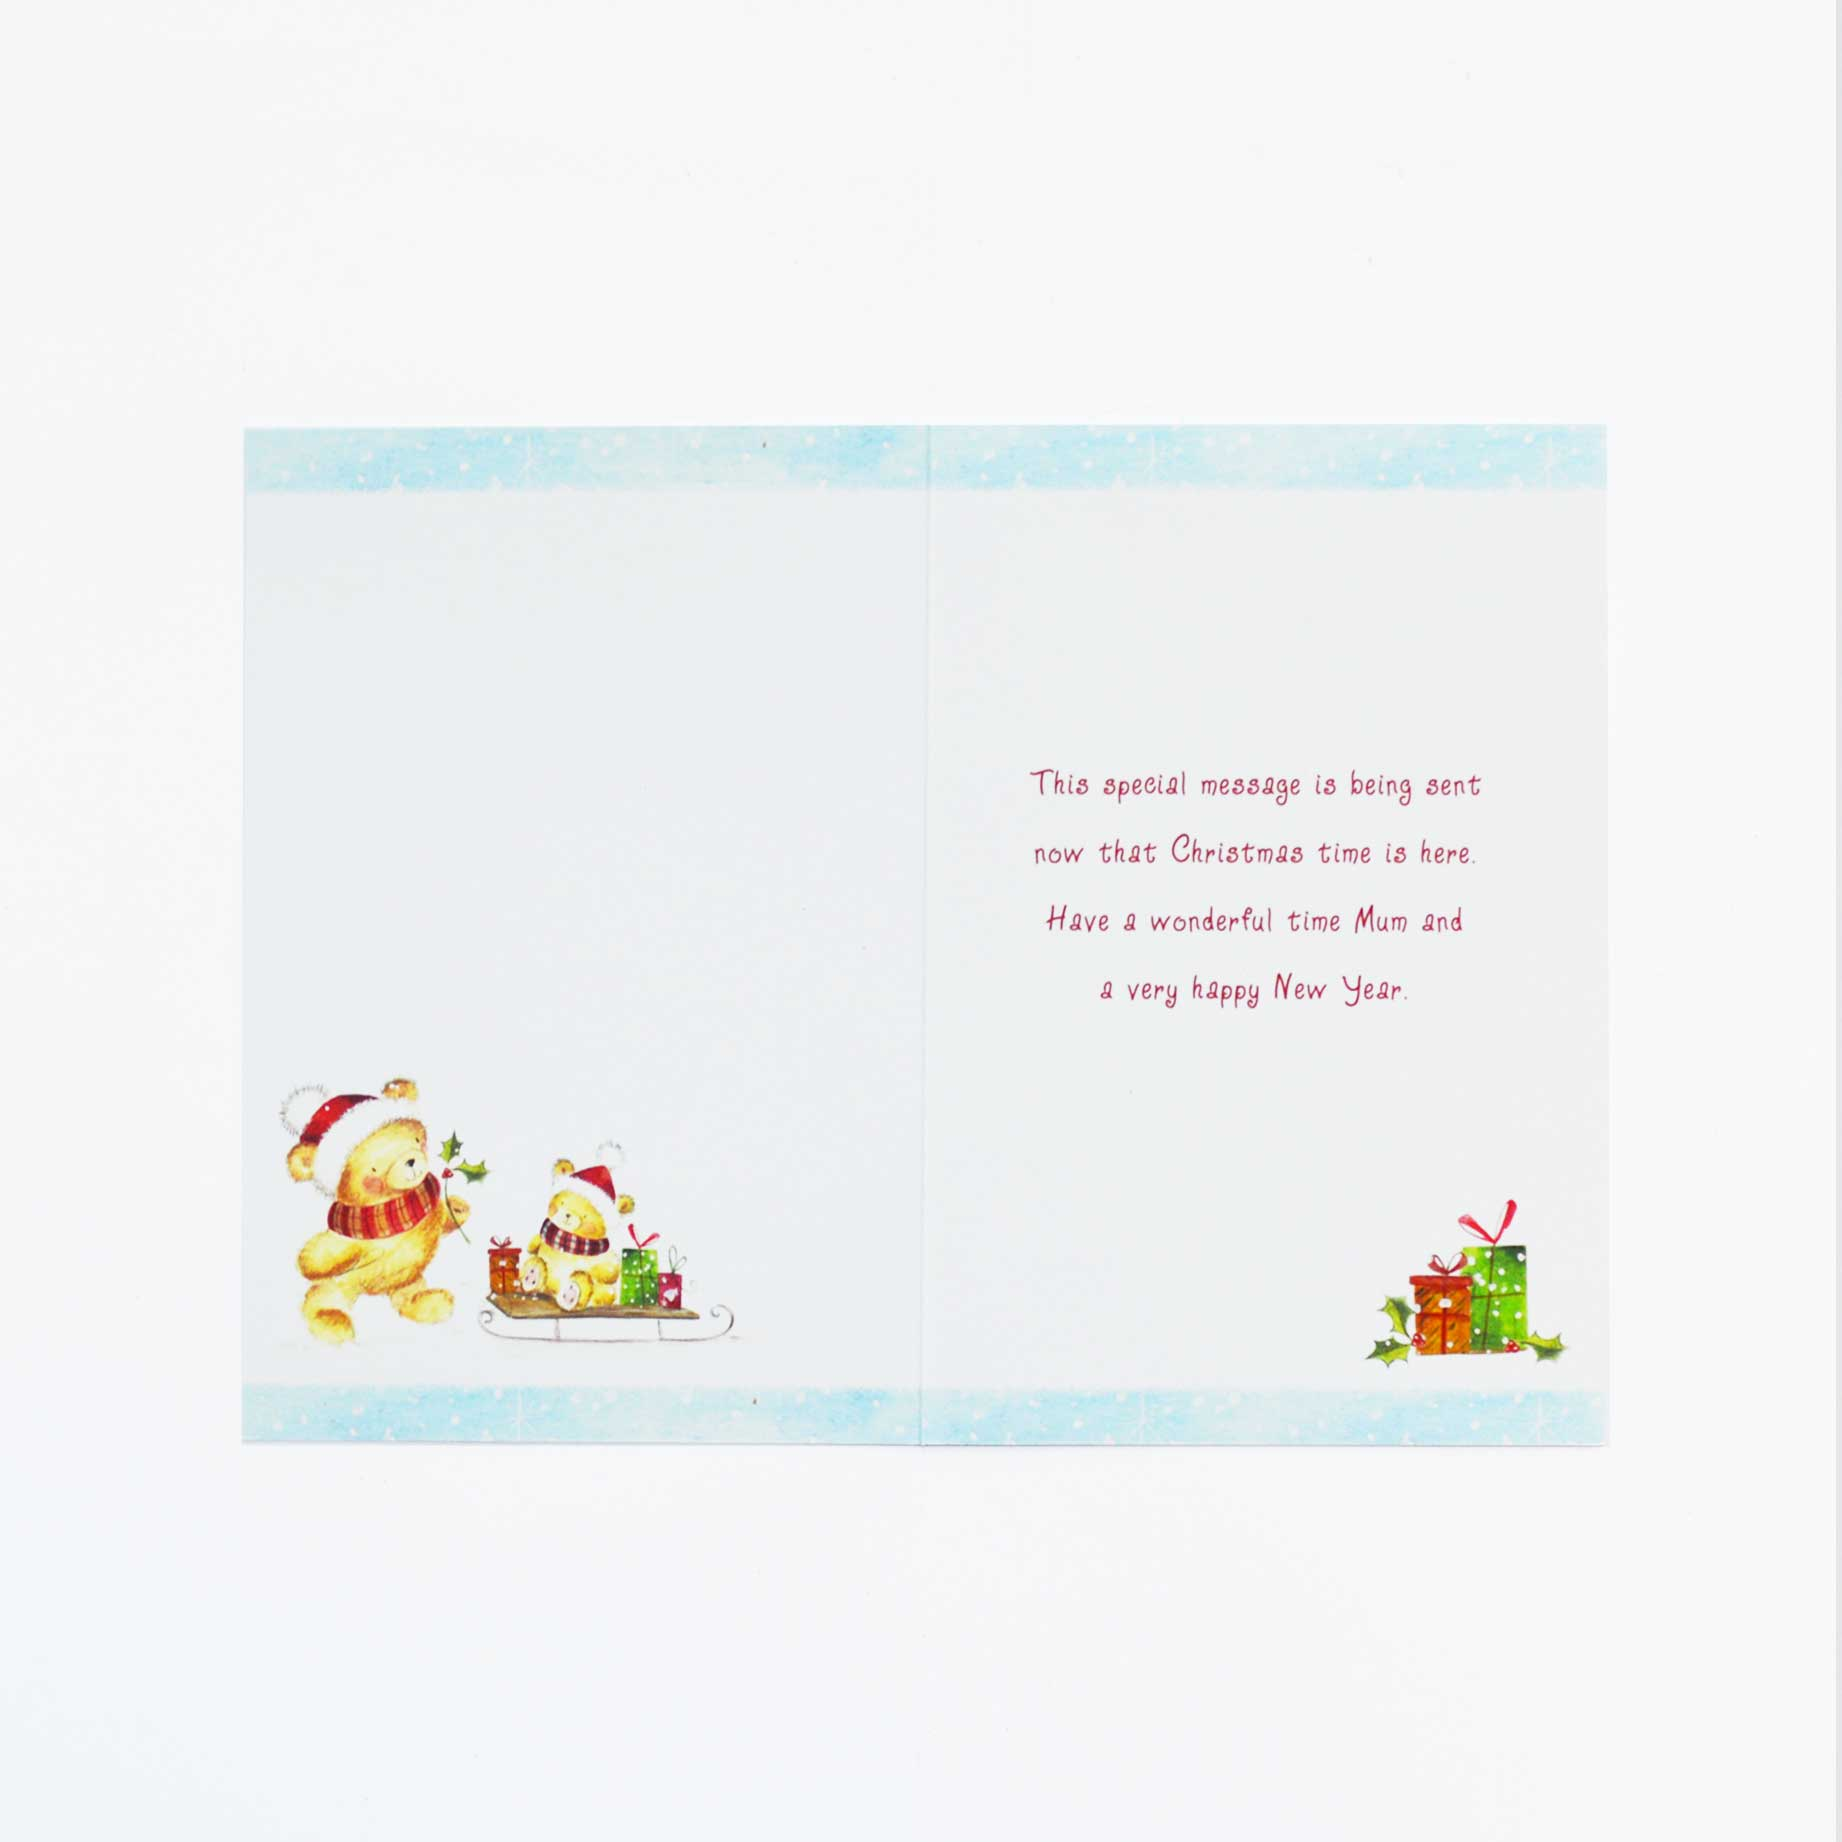 X11138 mum 2 garlanna greeting cards mum and dad m4hsunfo